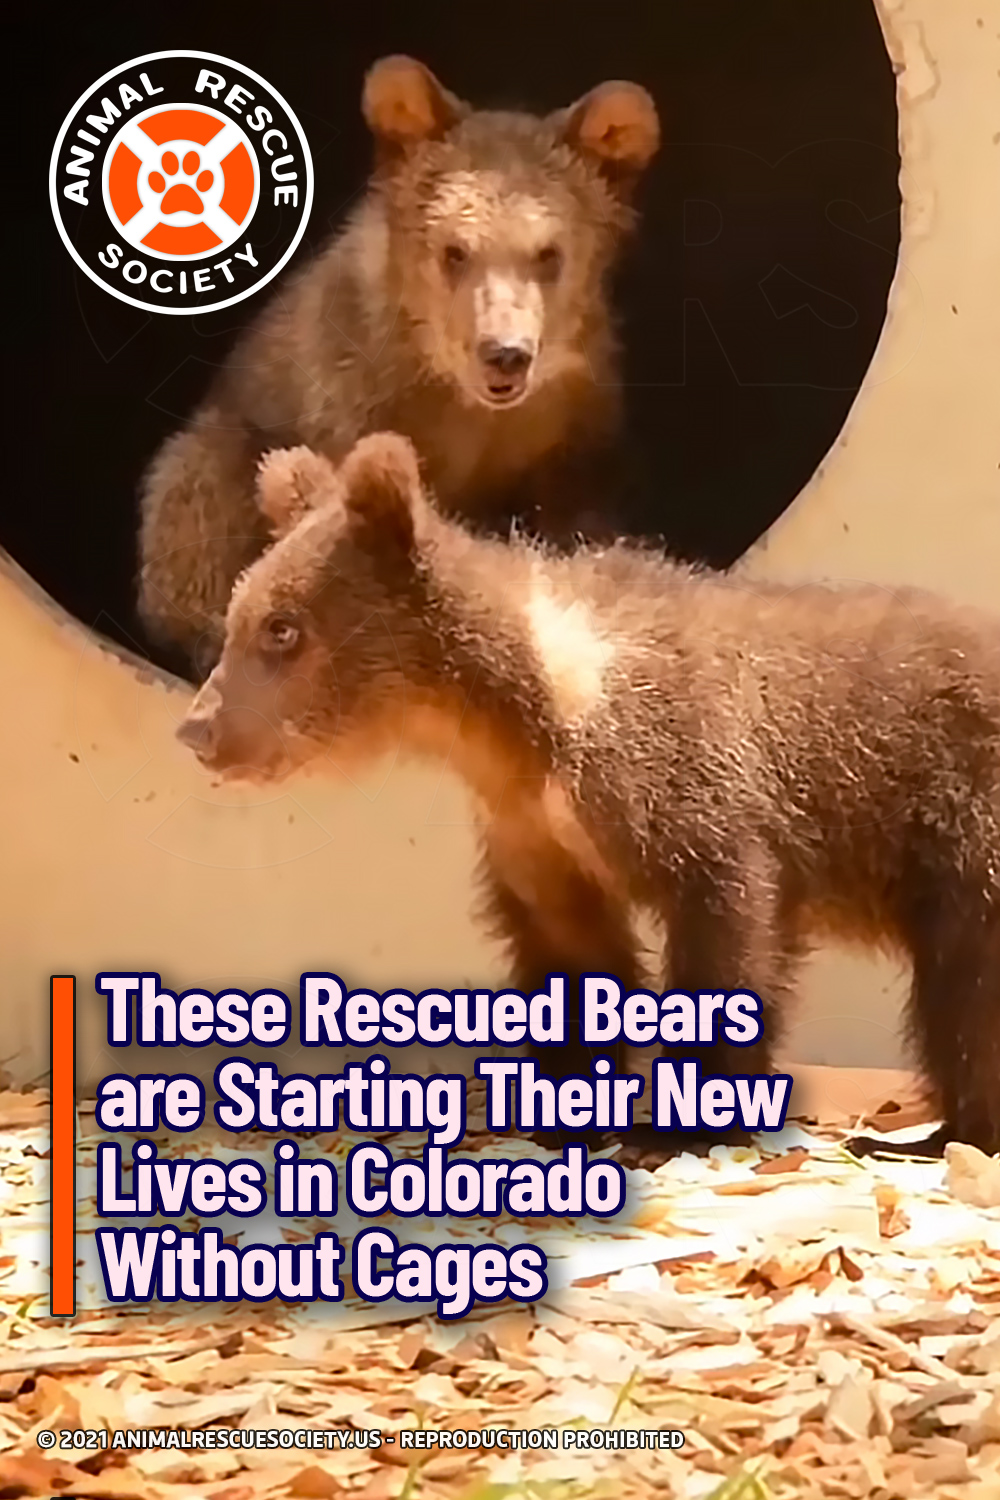 These Rescued Bears are Starting Their New Lives in Colorado Without Cages